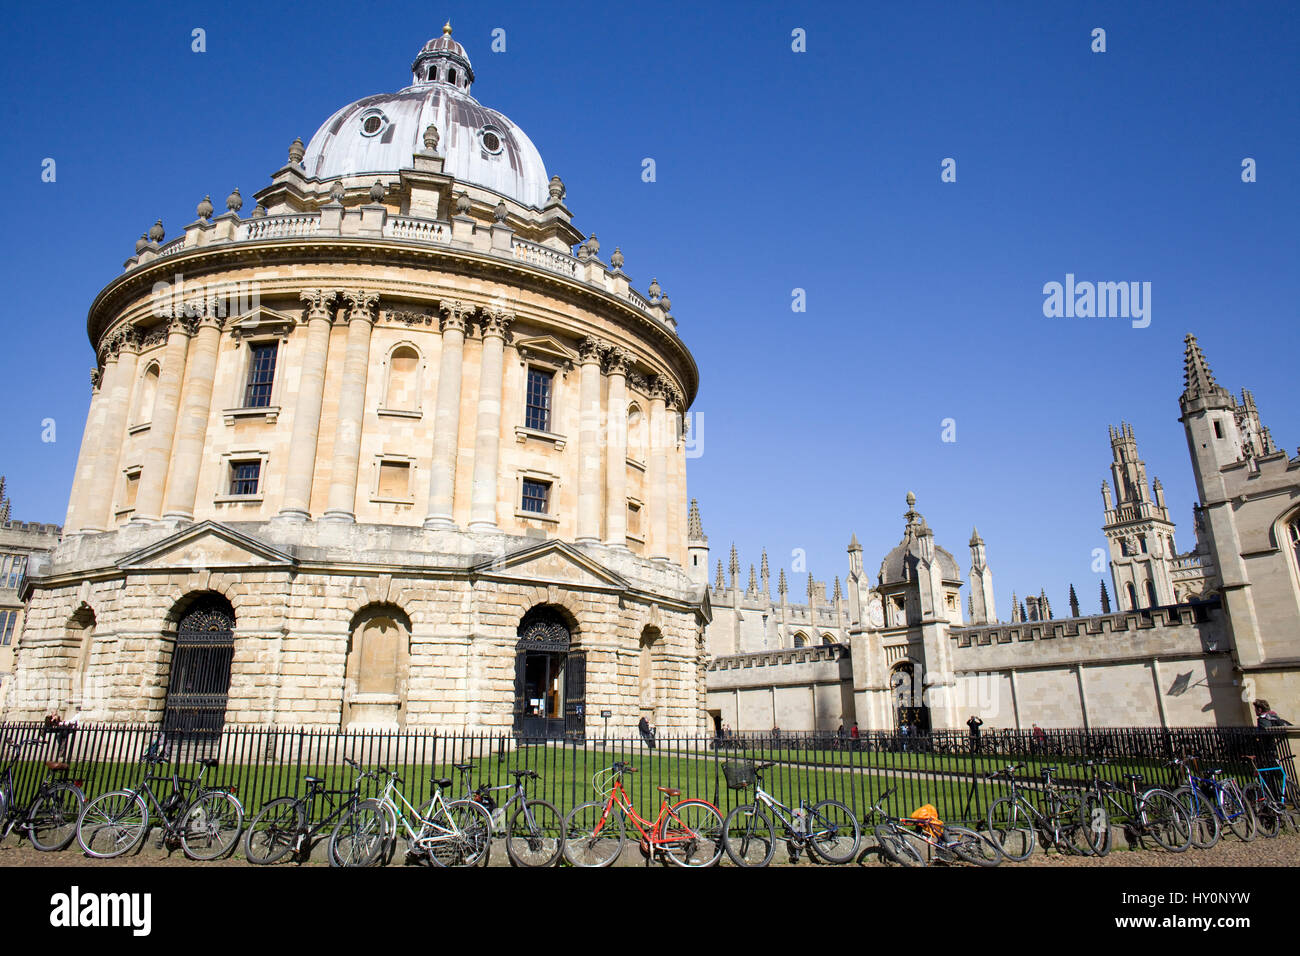 Radcliffe camera. Oxford University, England - Stock Image